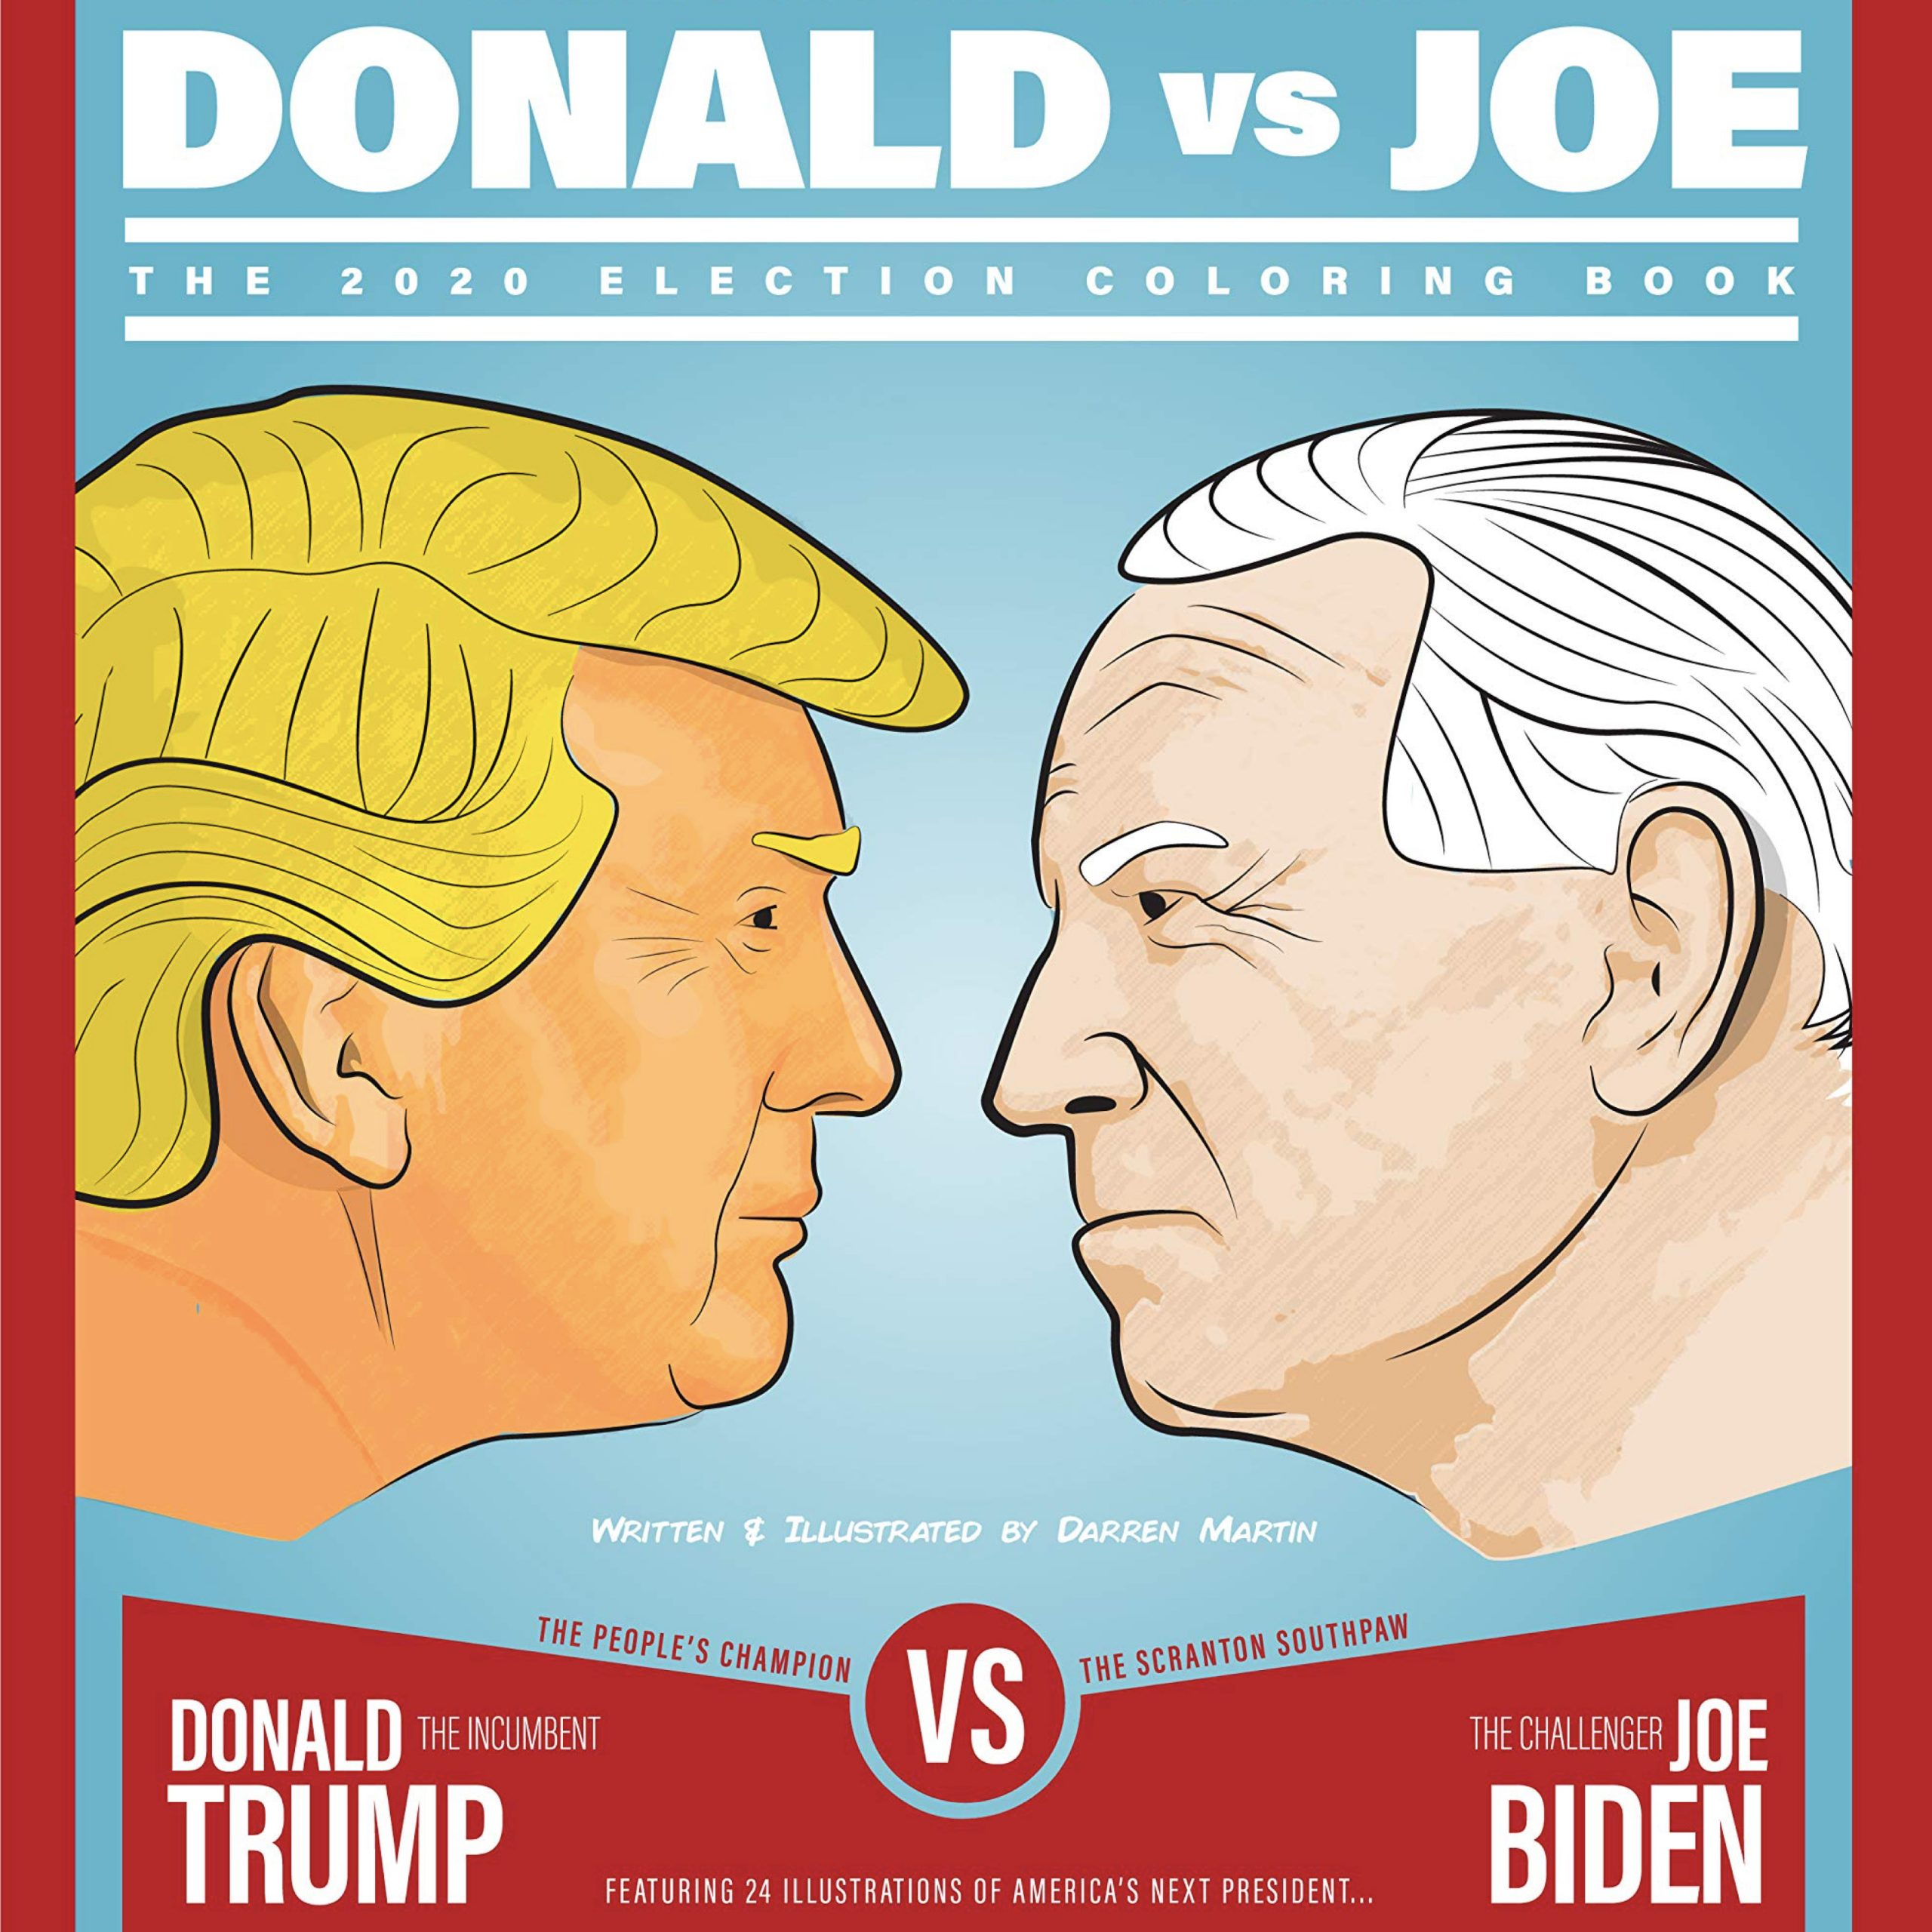 Donald vs Joe 2020 Election Coloring Book